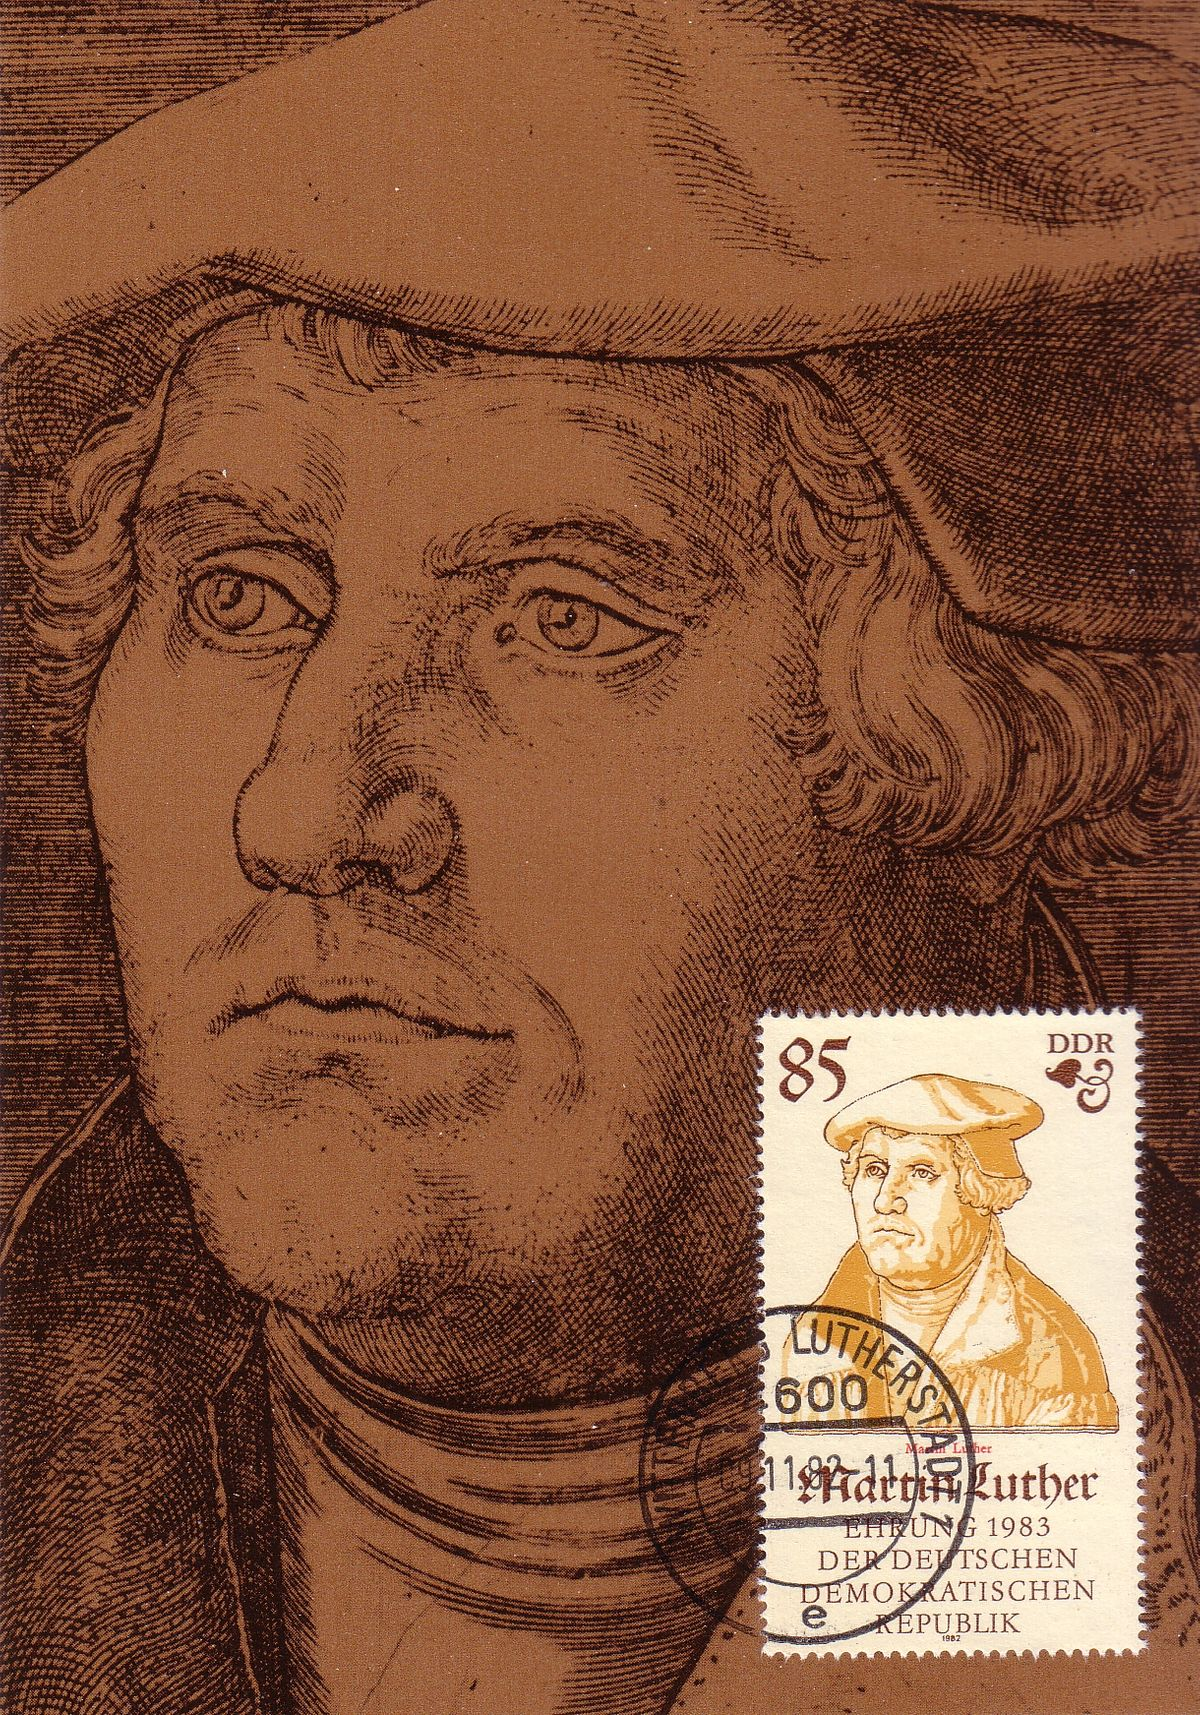 Martin Luther, FDC Michel 2754 - 2757, DDR, Luther, 1983, 500 Jahre Martin Luther, Maximumkarte